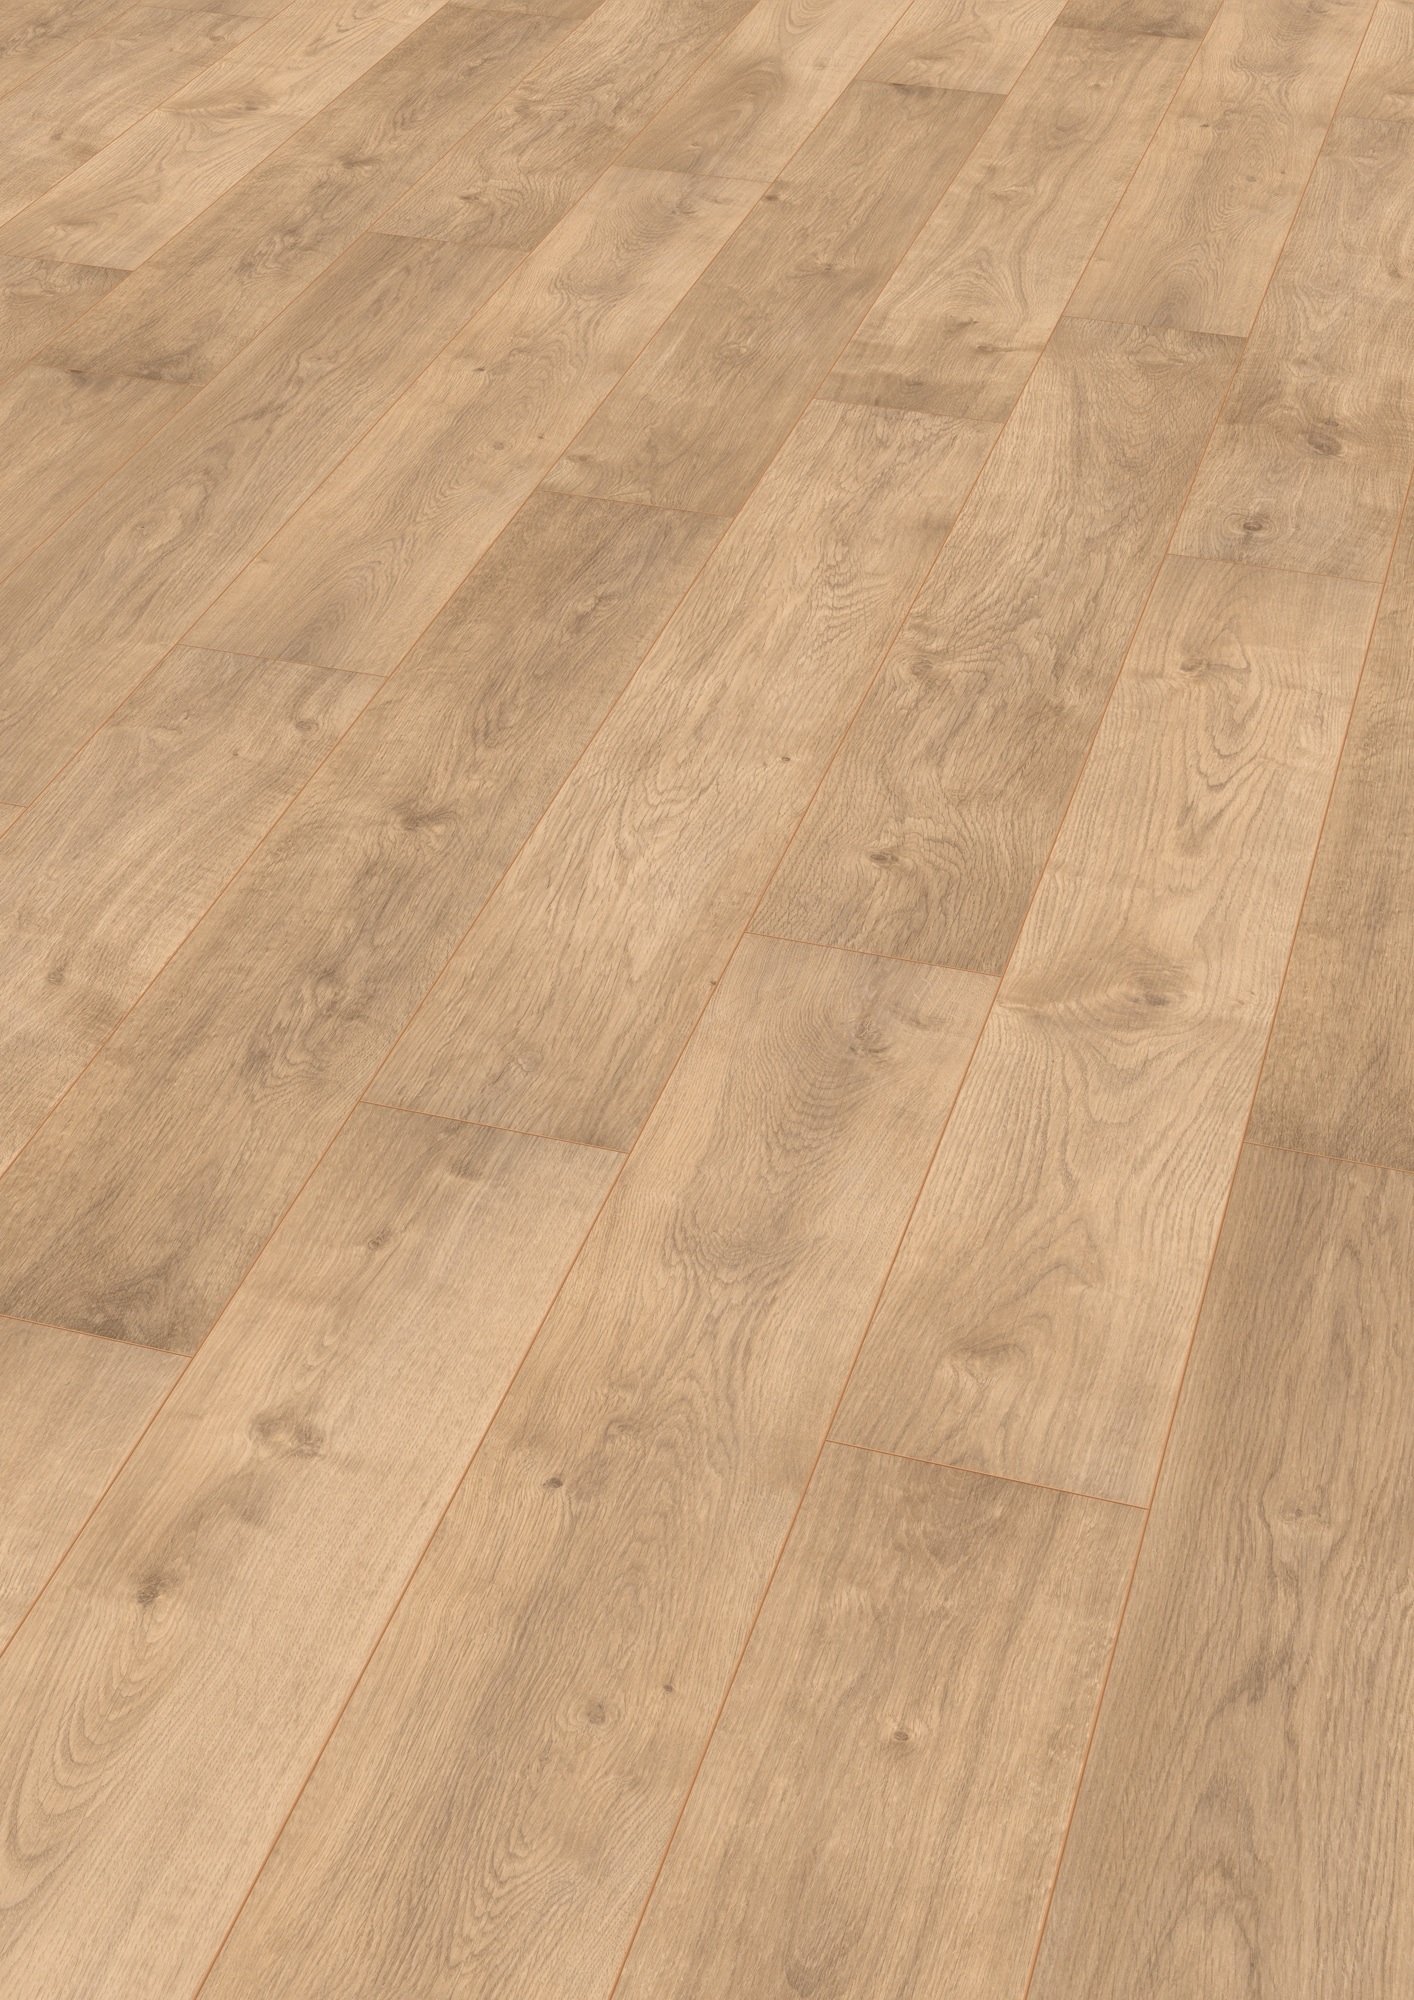 Finfloor original roble glamour club del parquet for Suelos de roble